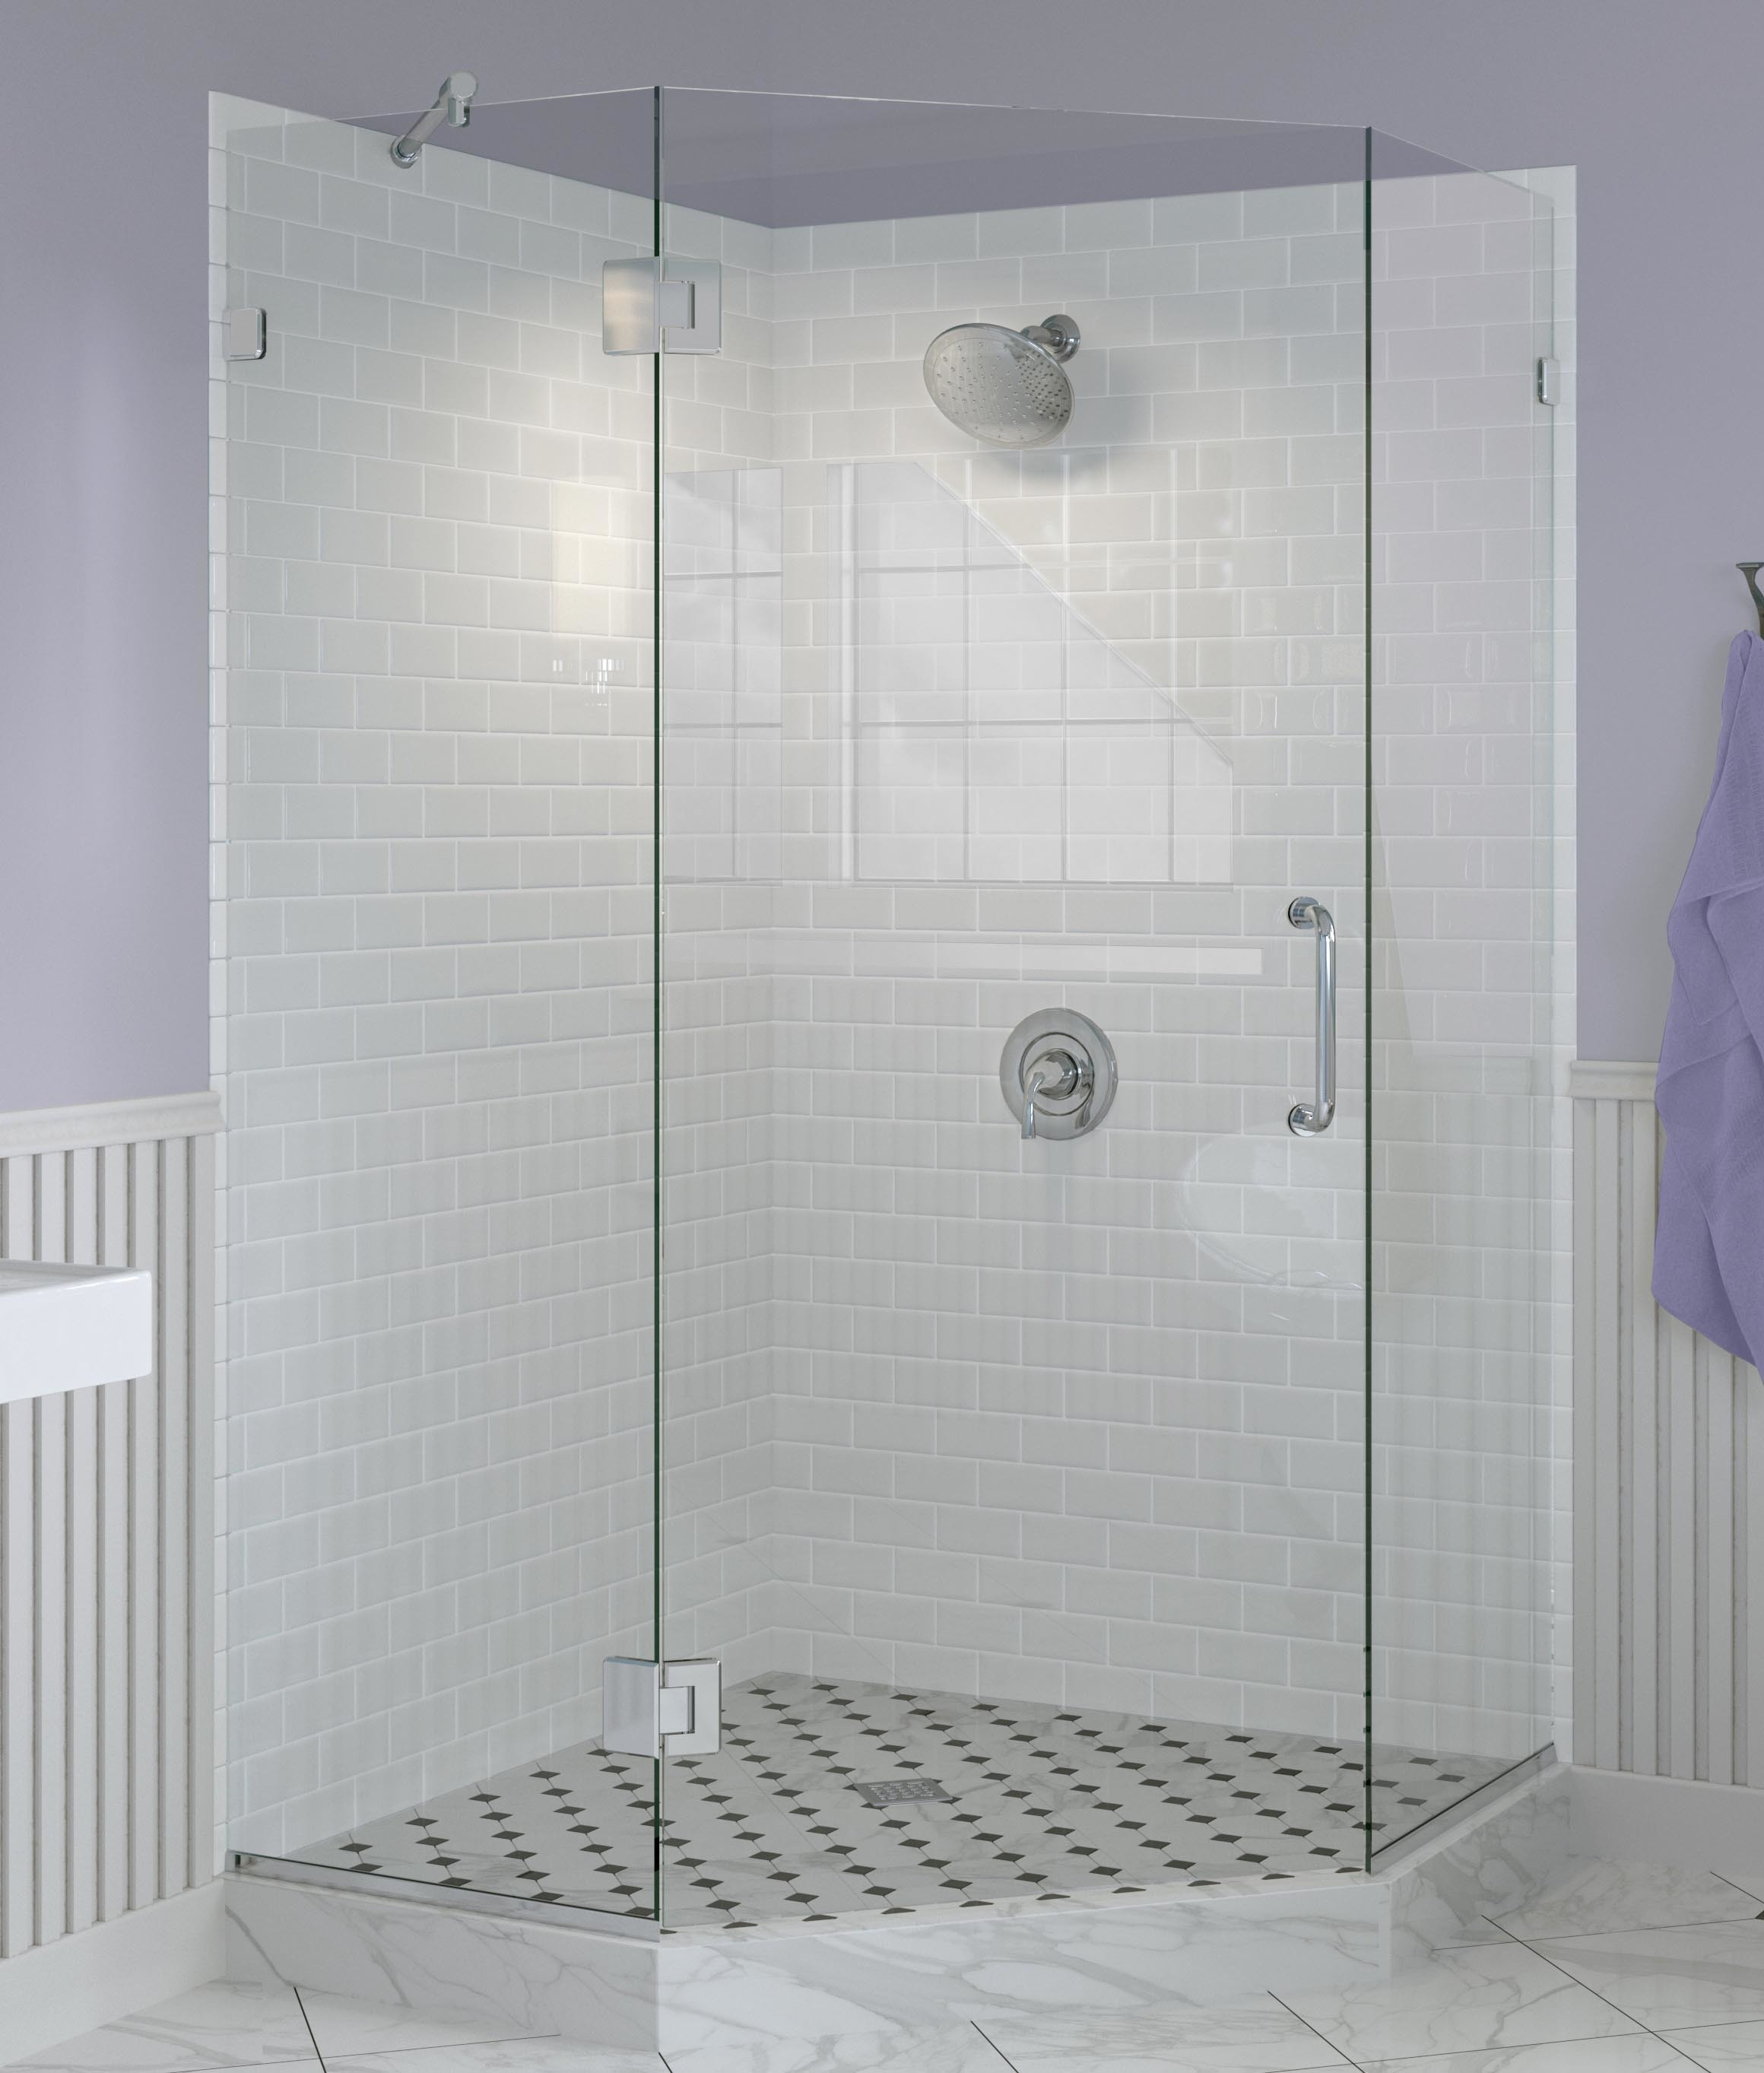 Celesta Frameless 3/8-inch Glass Neo Angle Swing… | Basco Shower Doors